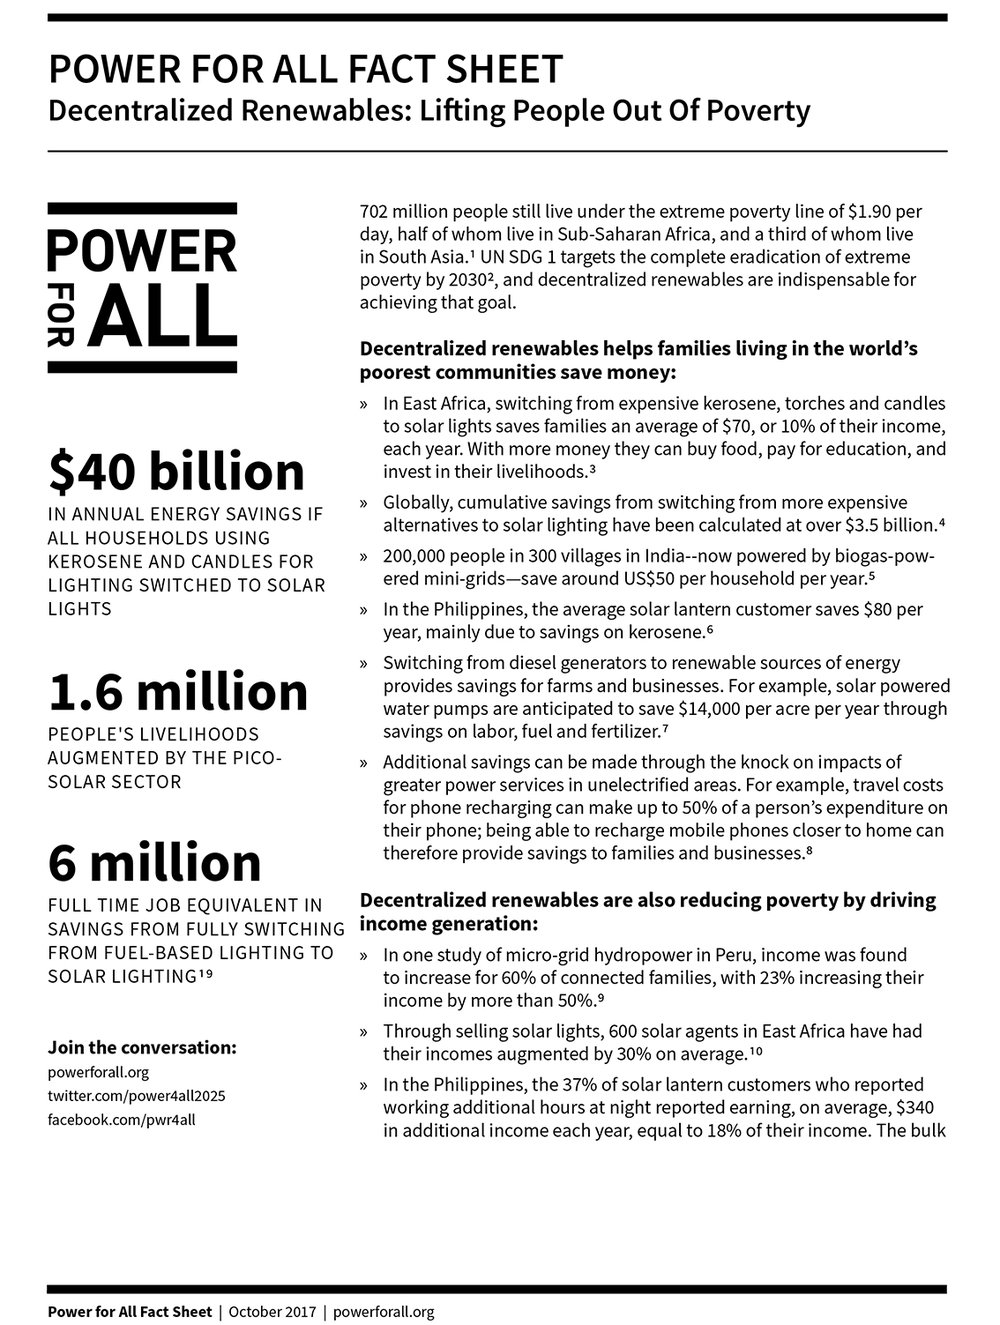 P4A-fact-sheet-Decentralized-Renewables-Lifting-People-Out-Of-Poverty-final-draft-1134px.jpg